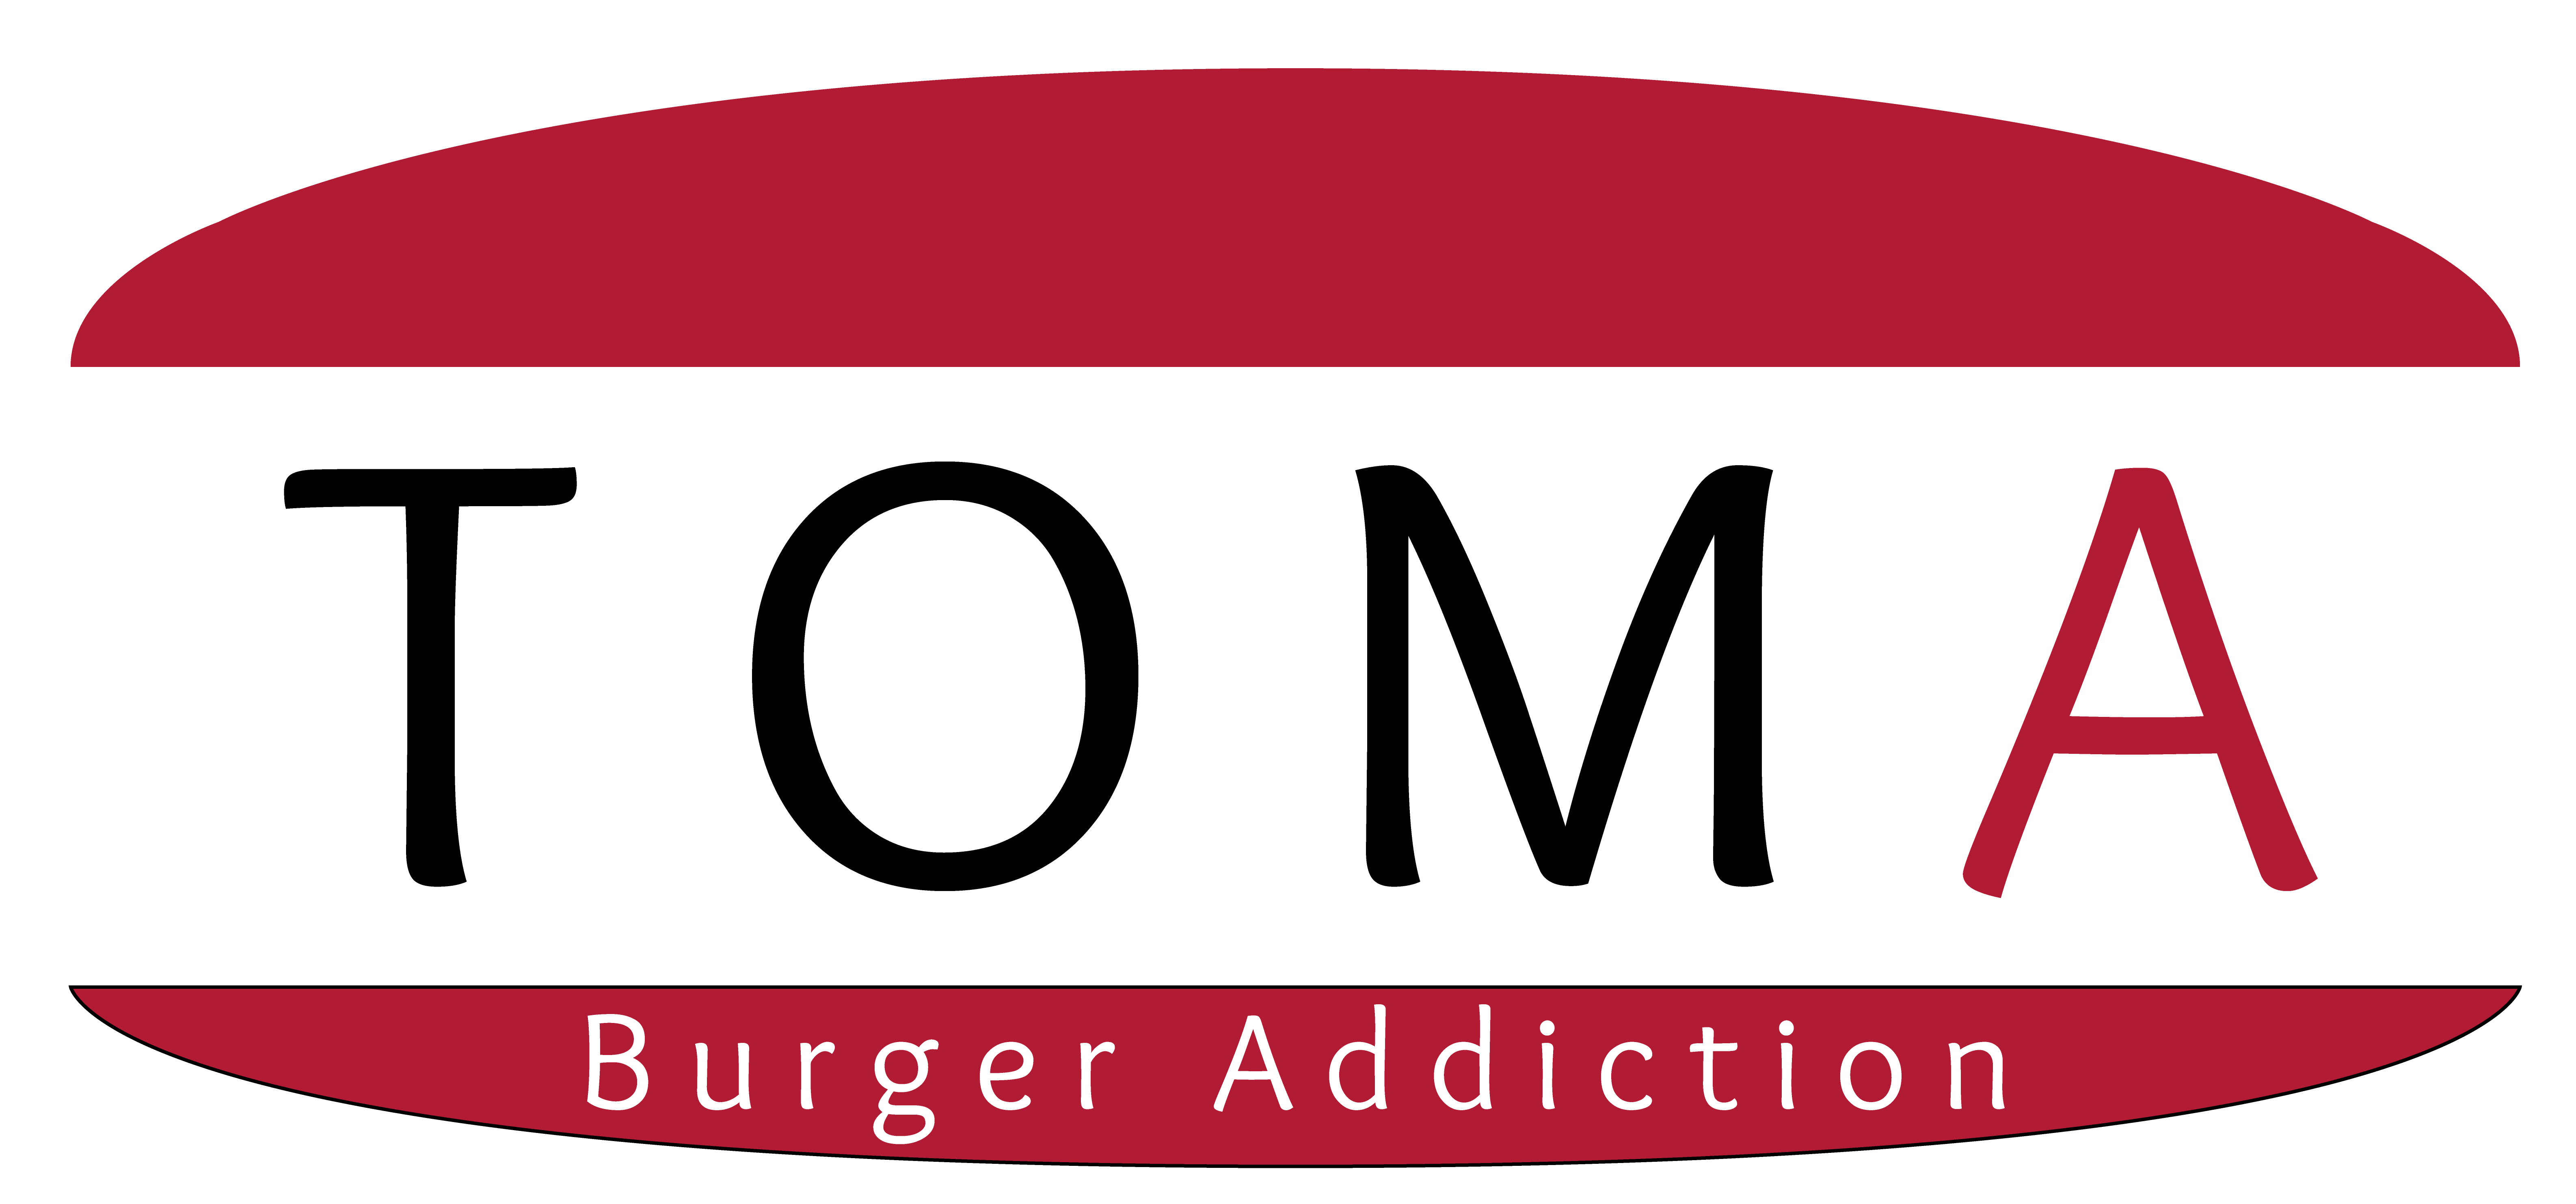 Toma burger addiction toronto. Cocktails clipart shirley temple